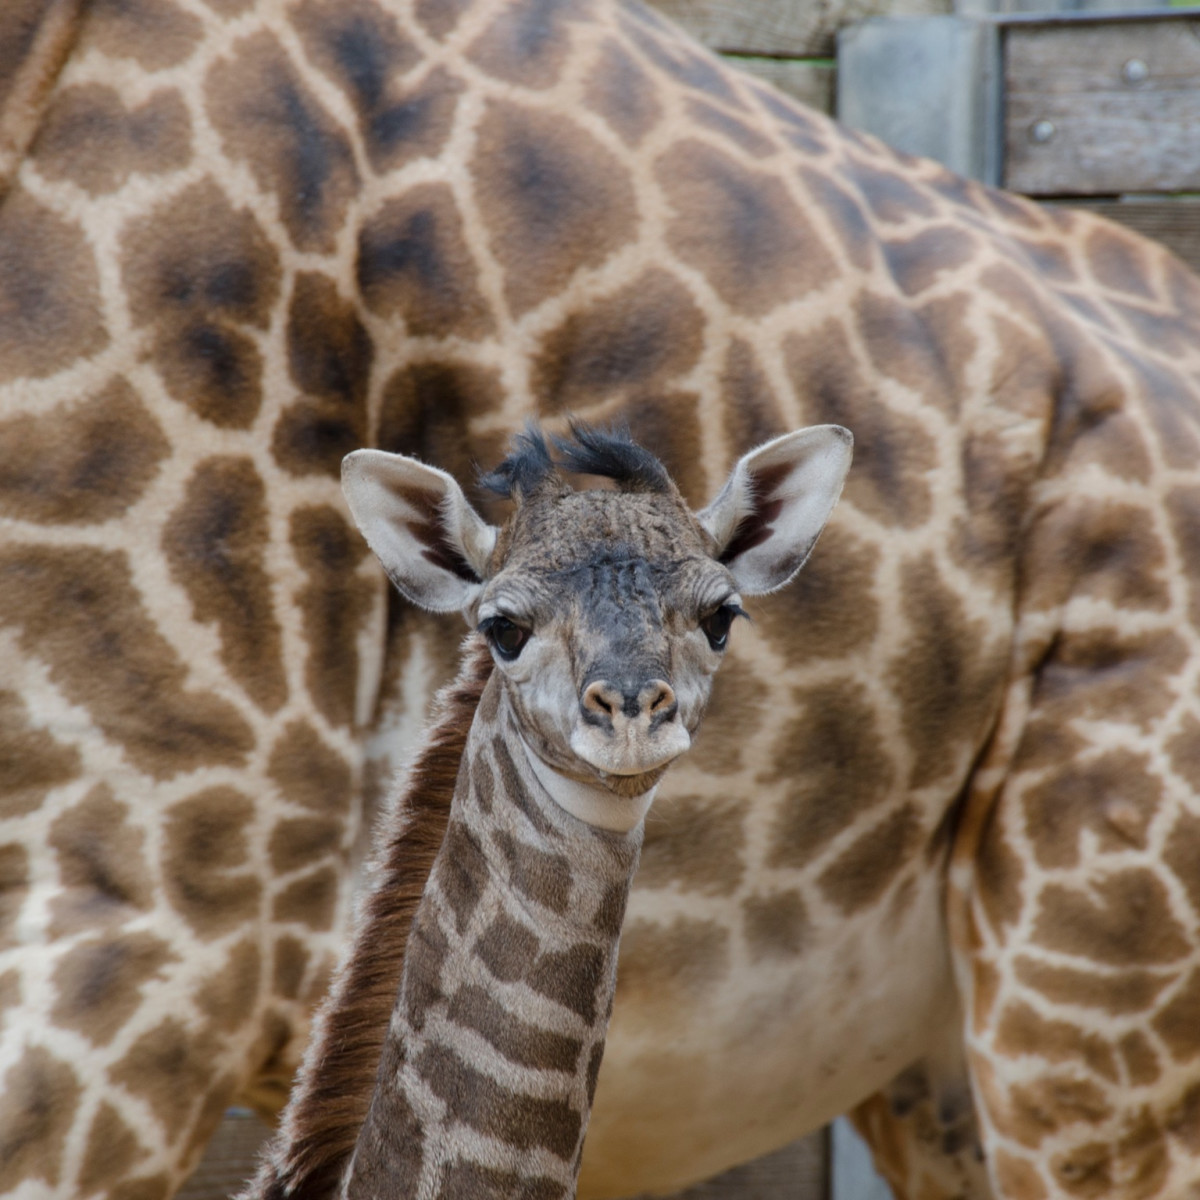 New baby giraffe at Houston Zoo